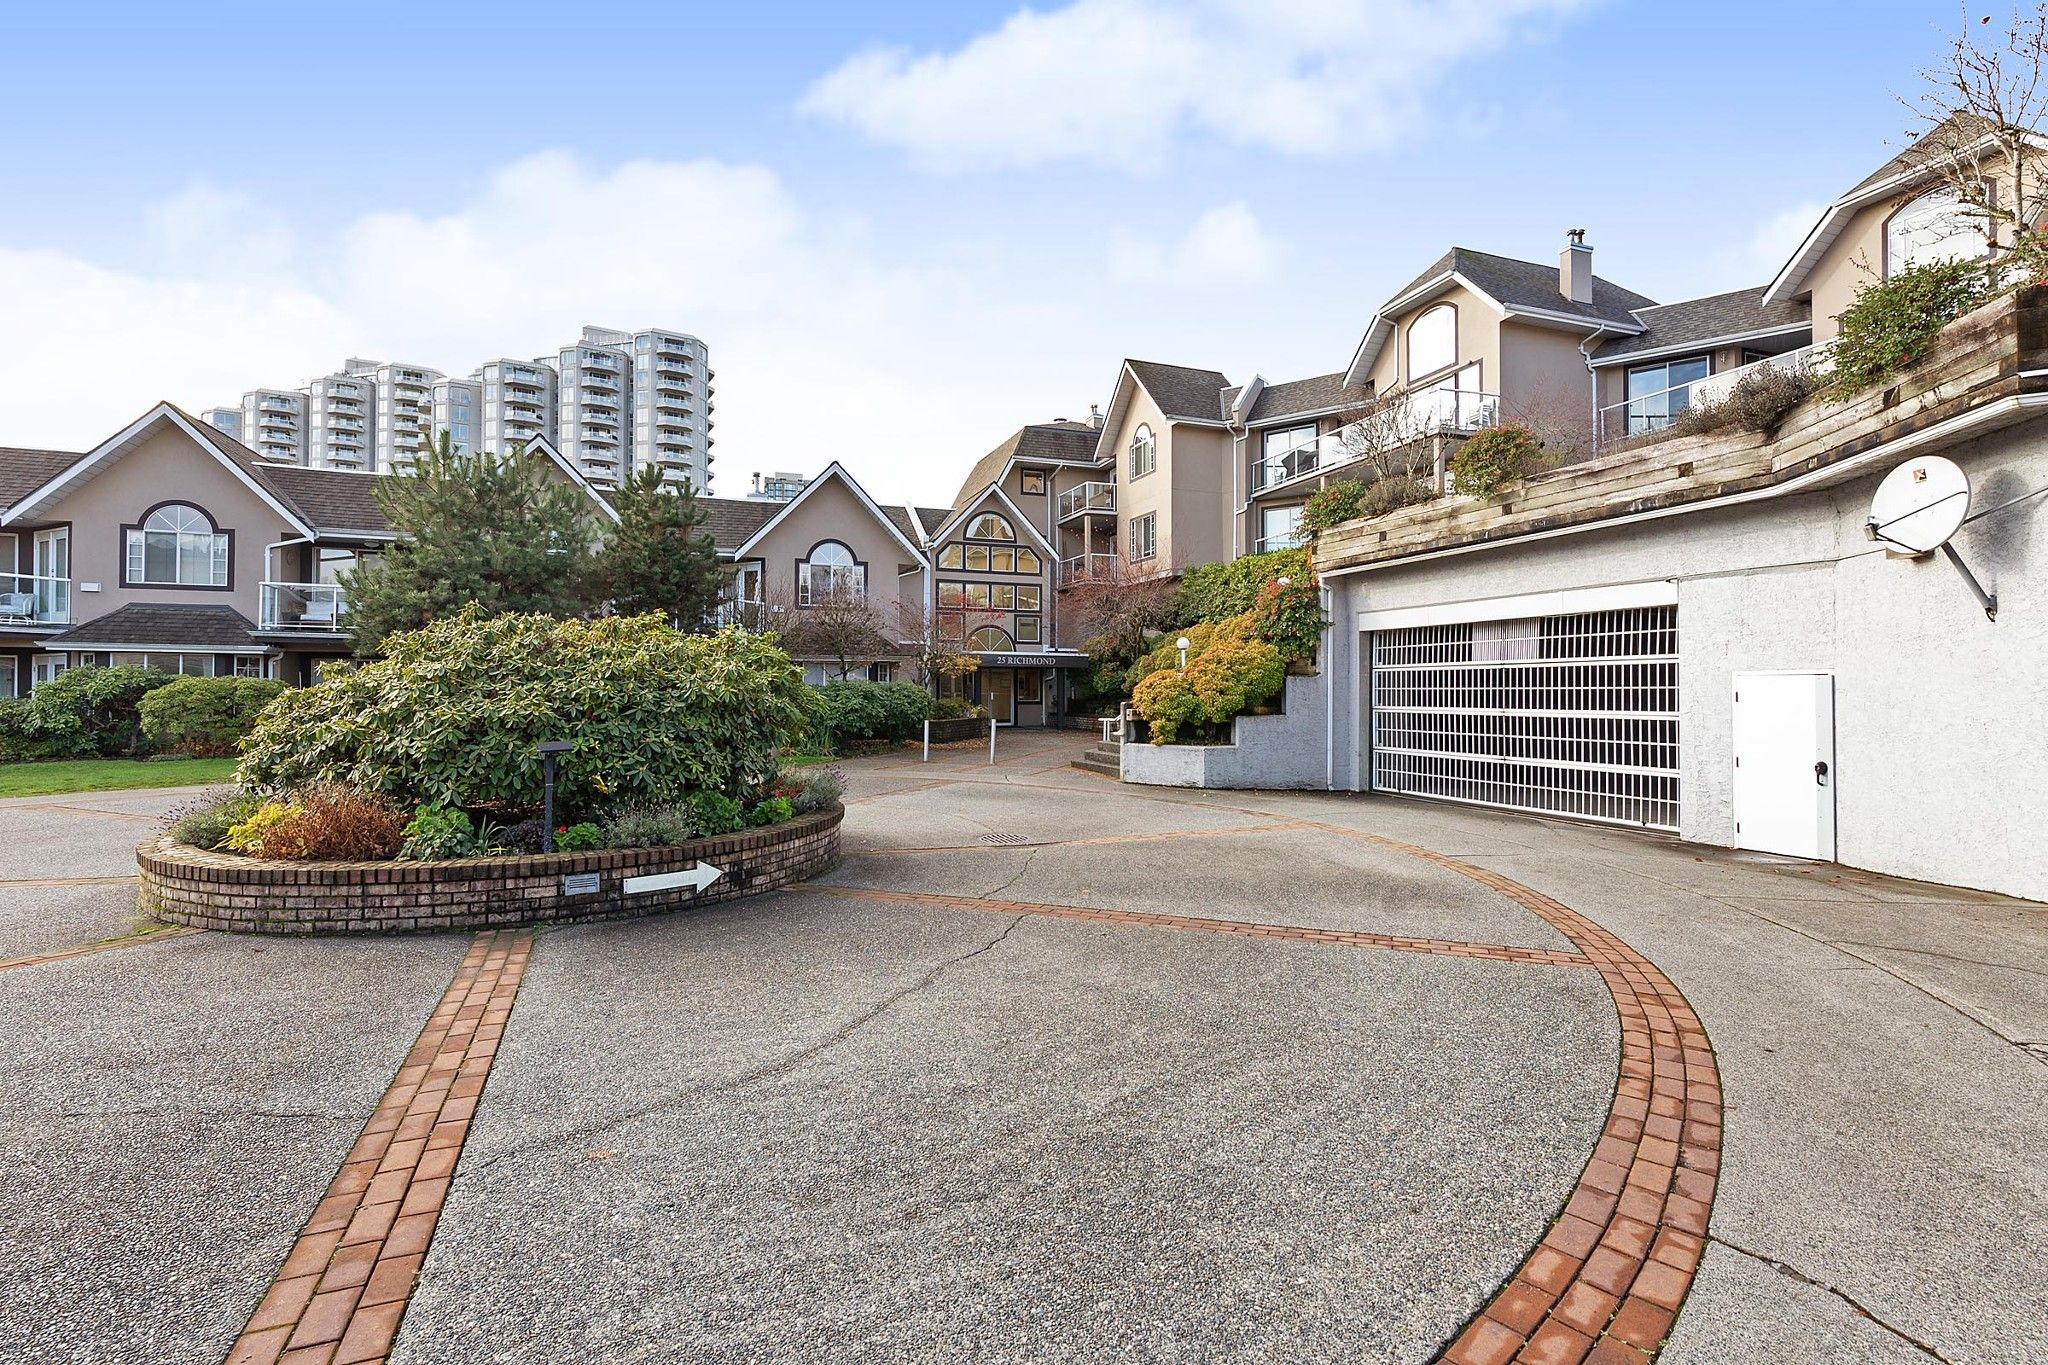 """Main Photo: 208 25 RICHMOND Street in New Westminster: Fraserview NW Condo for sale in """"FRASERVIEW"""" : MLS®# R2423119"""